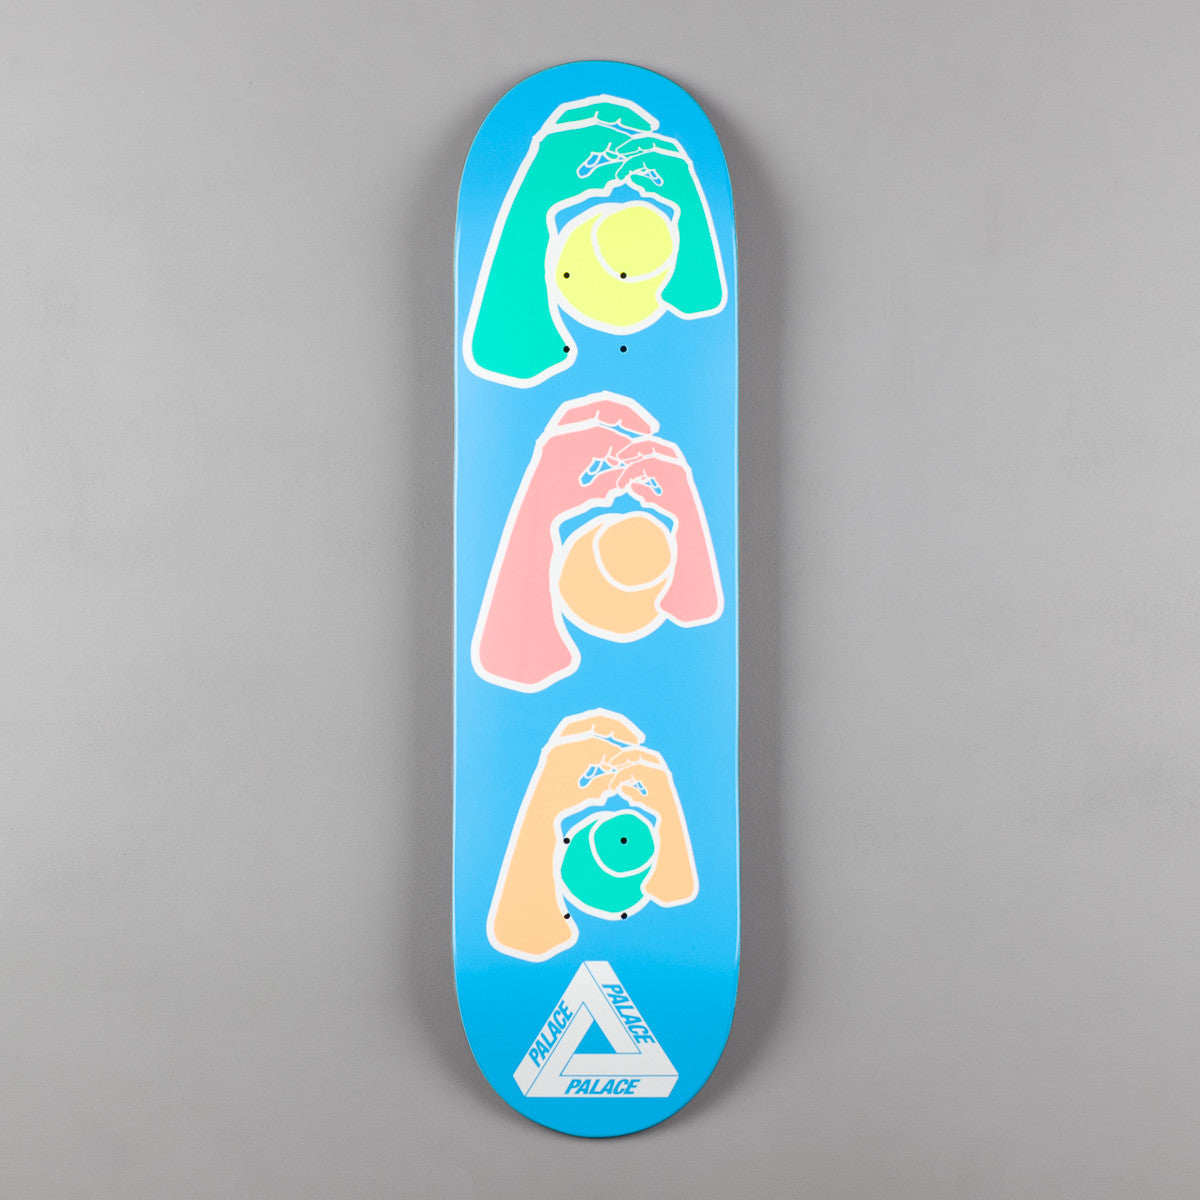 Palace Knight Hands 2 Deck - 8.2""